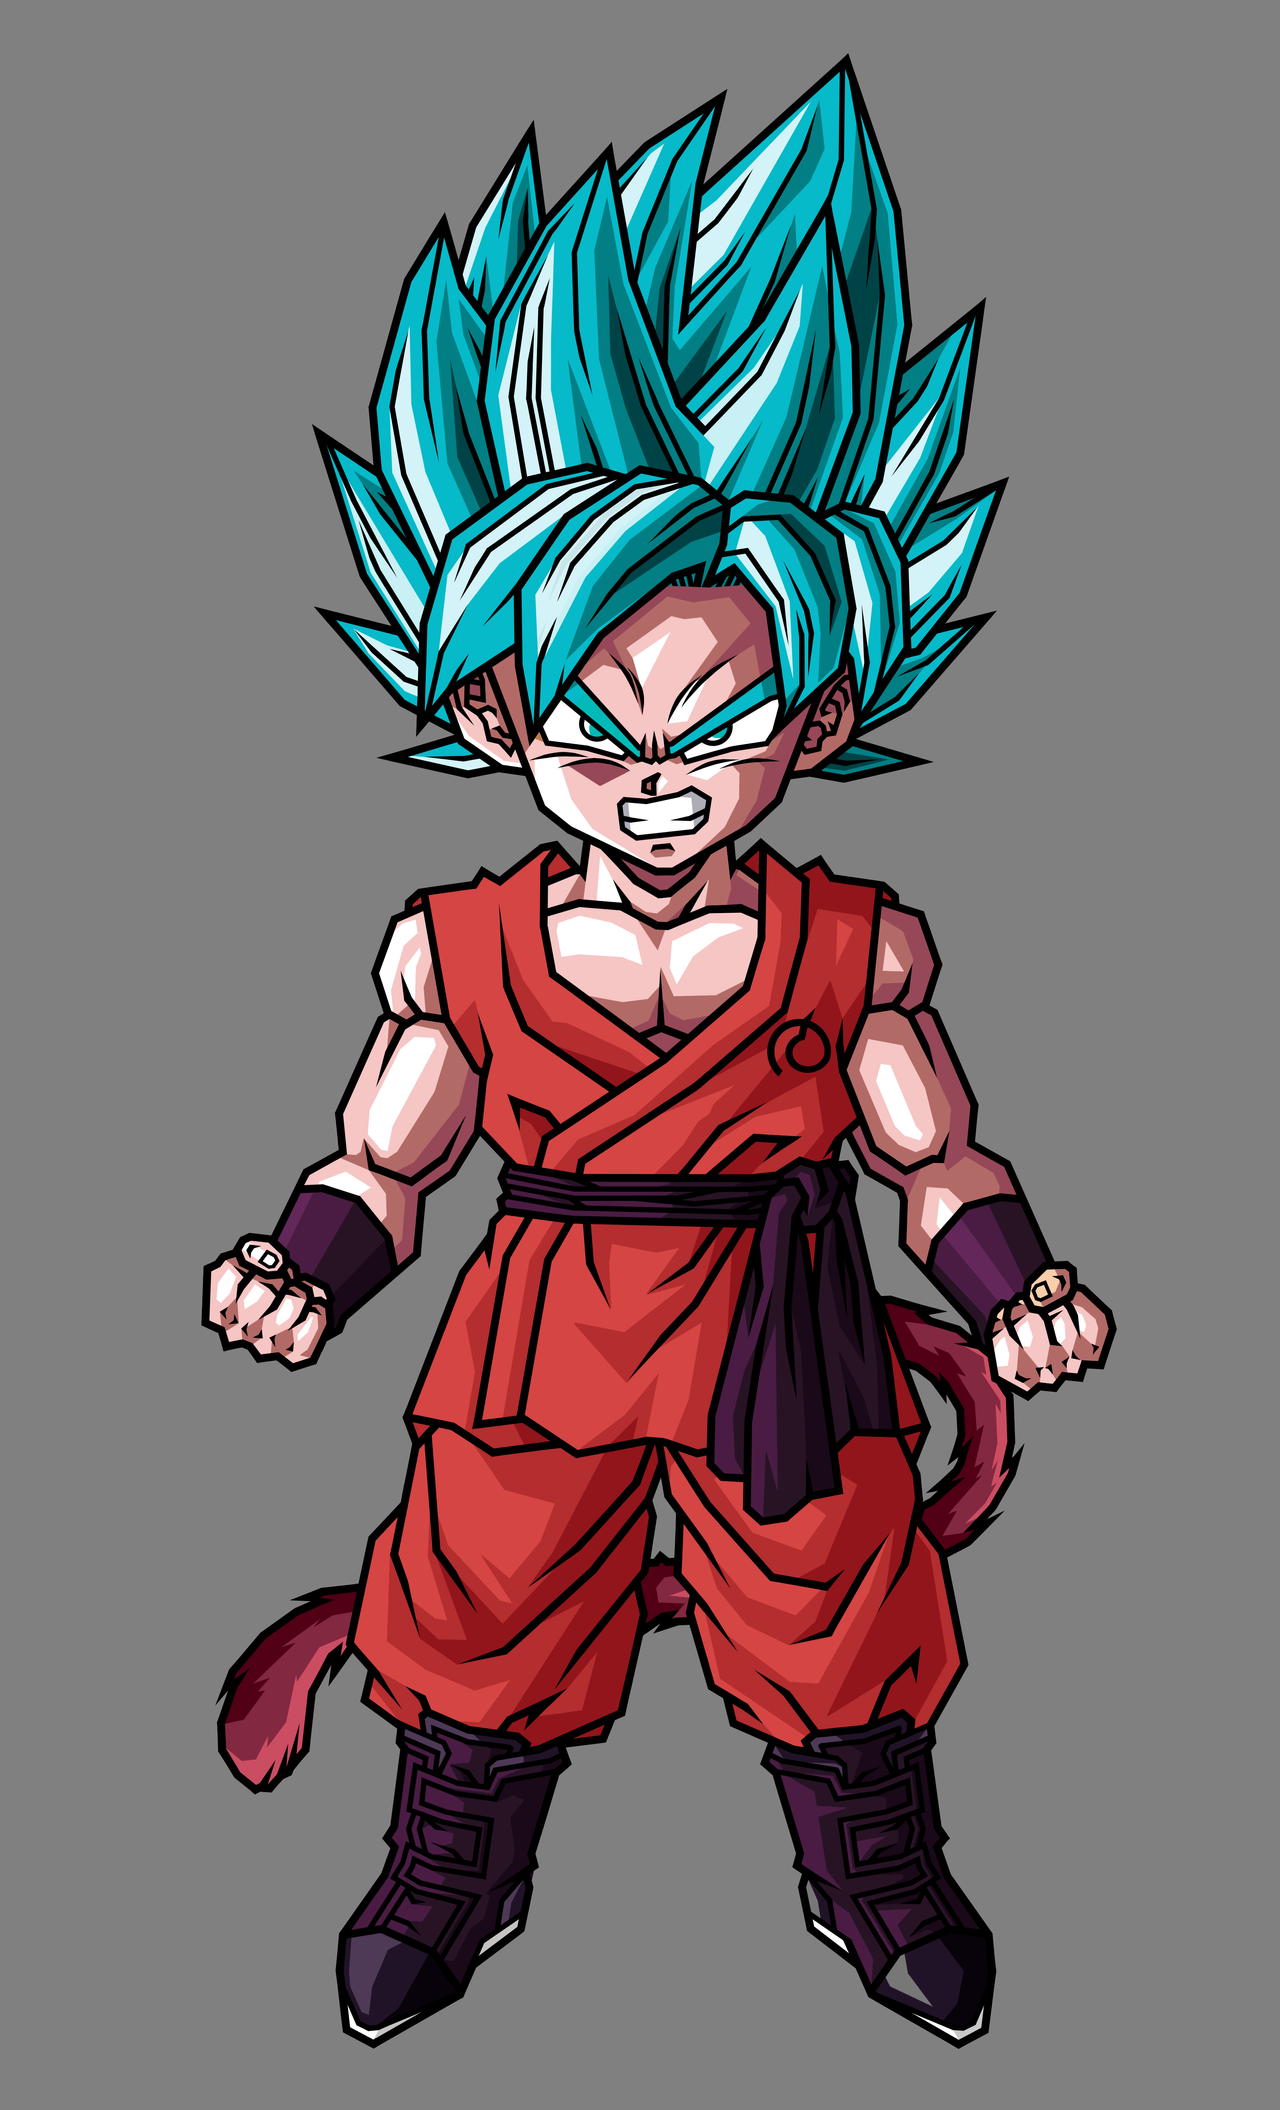 Kid Goku SSJ Blue Kaioken by hsvhrt on DeviantArt